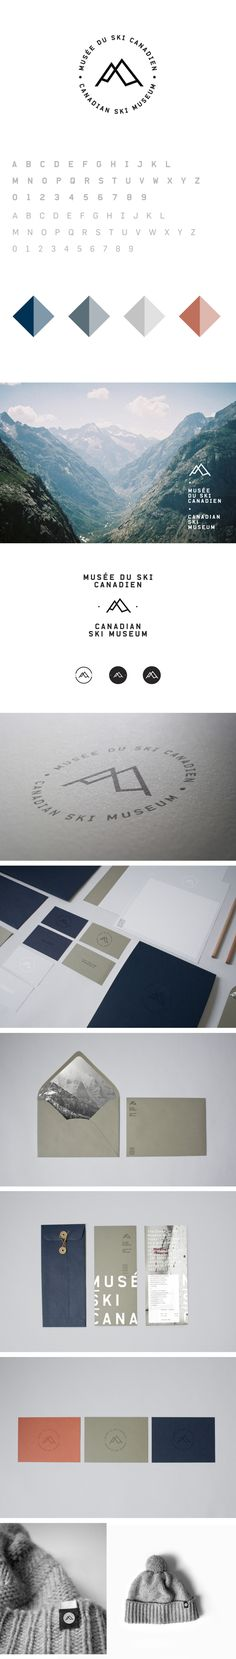 / | #stationary #corporate #design #corporatedesign #identity #branding #marketing < repinned by www.BlickeDeeler.de | Take a look at www.LogoGestaltung-Hamburg.de